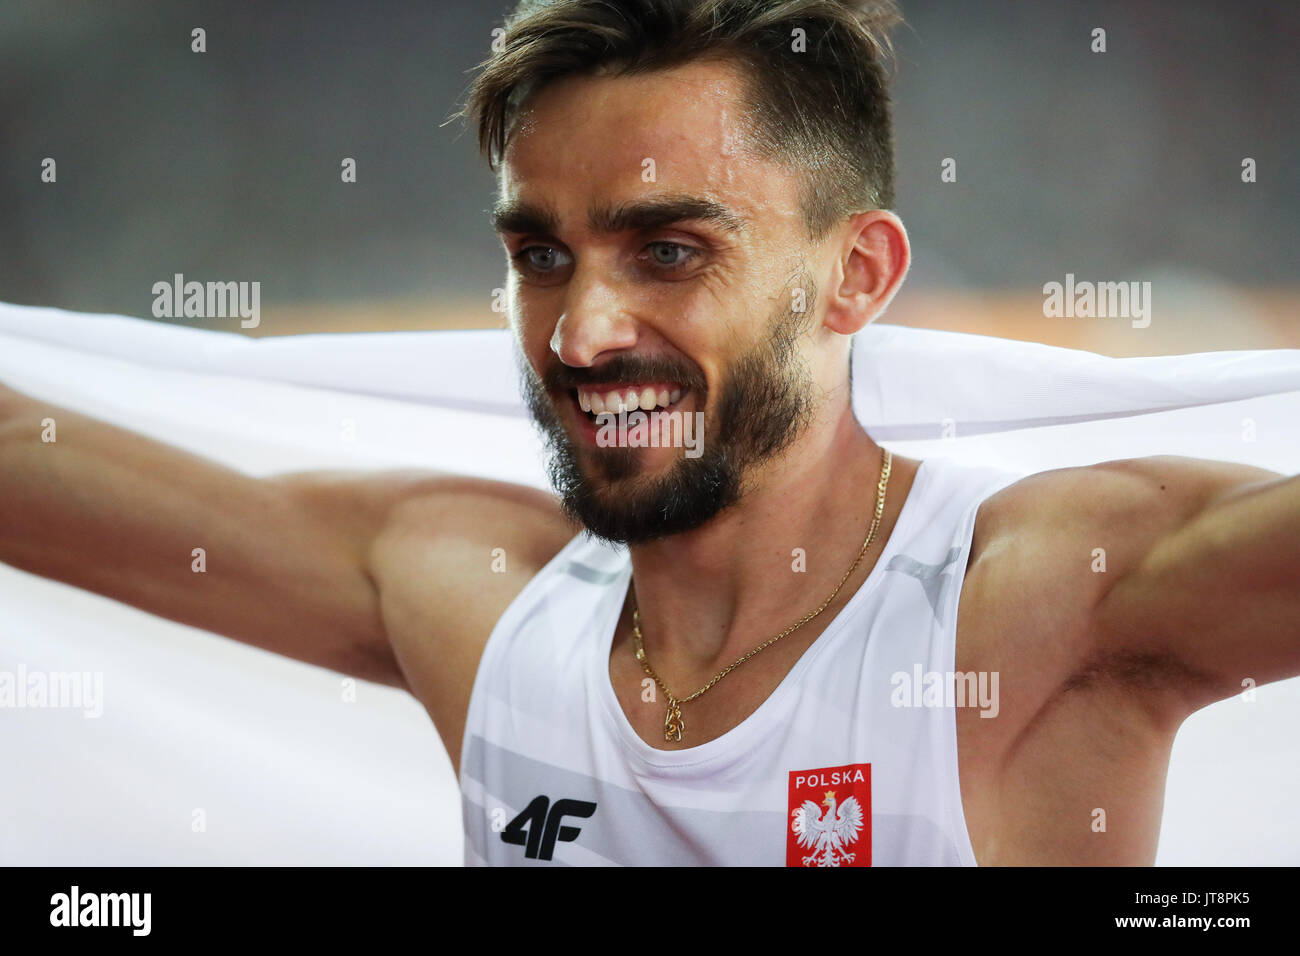 London, UK. 08th Aug, 2017. London, August 08 2017 . Adam Kszczot, Poland, runner up in the men's 400m final on day five of the IAAF London 2017 world Championships at the London Stadium. Credit: Paul Davey/Alamy Live News - Stock Image